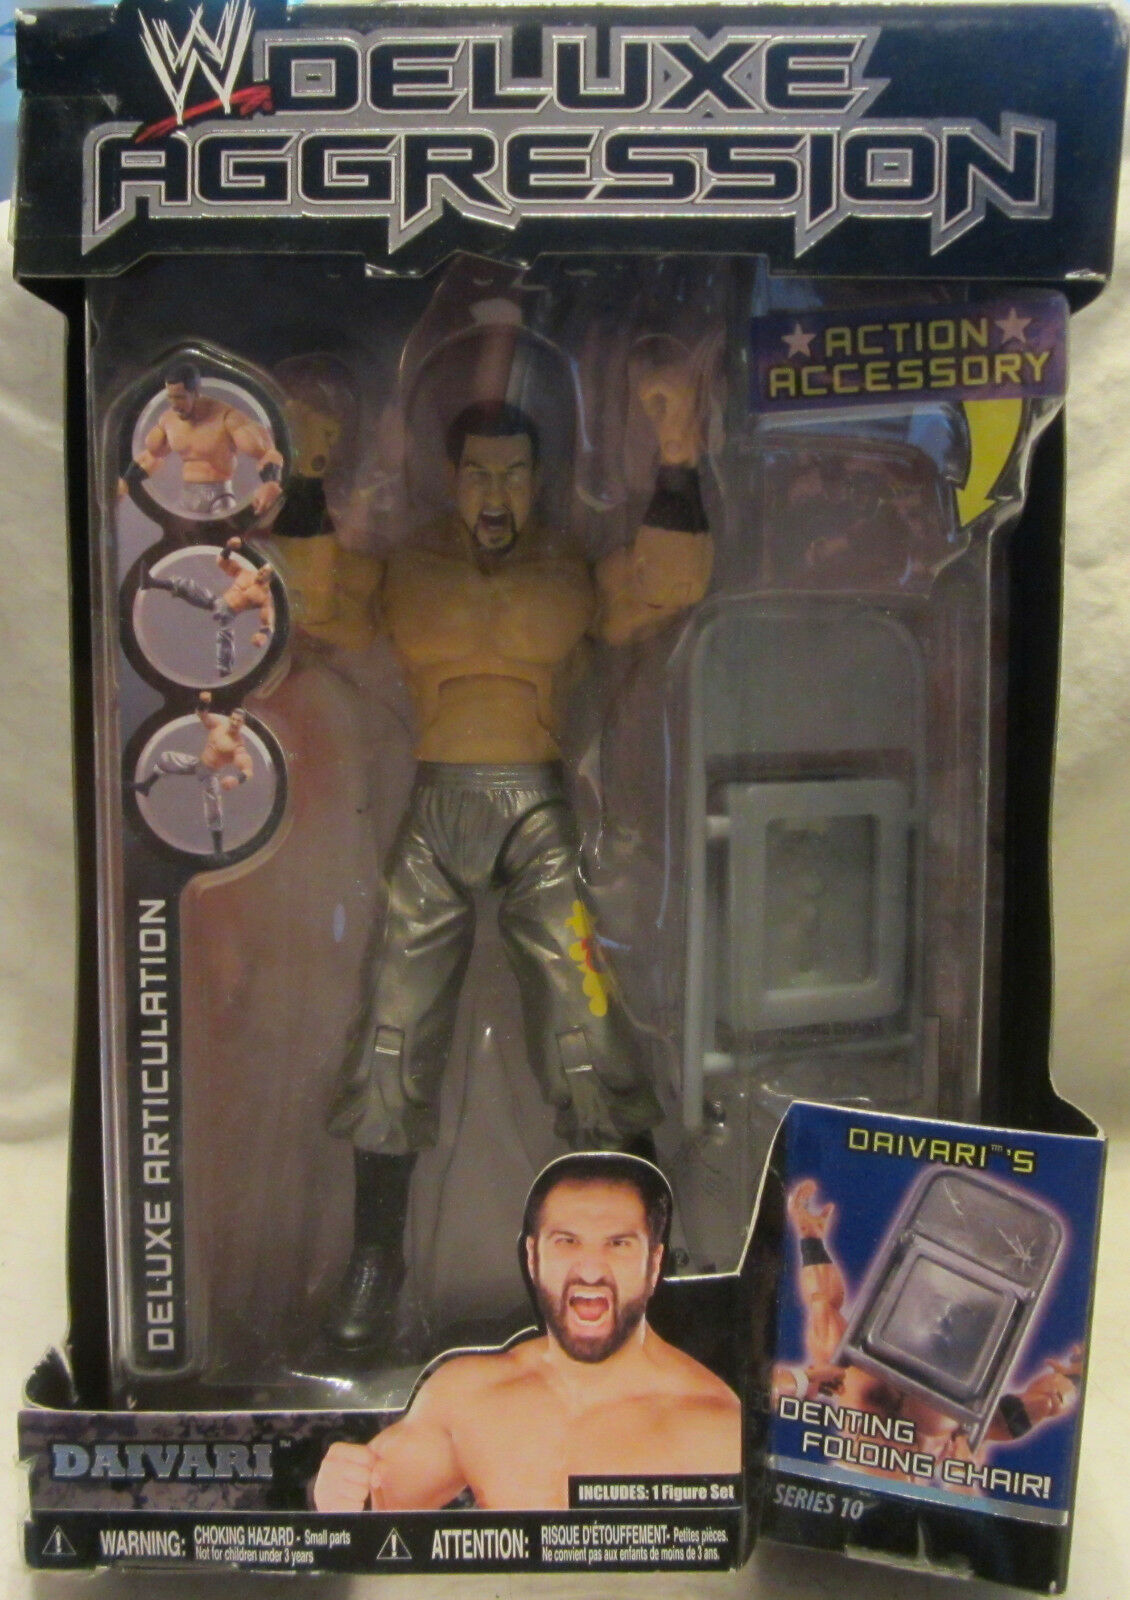 WWE Wrestling Deluxe Aggression Daivari Action Figure w Denting Folding Chair